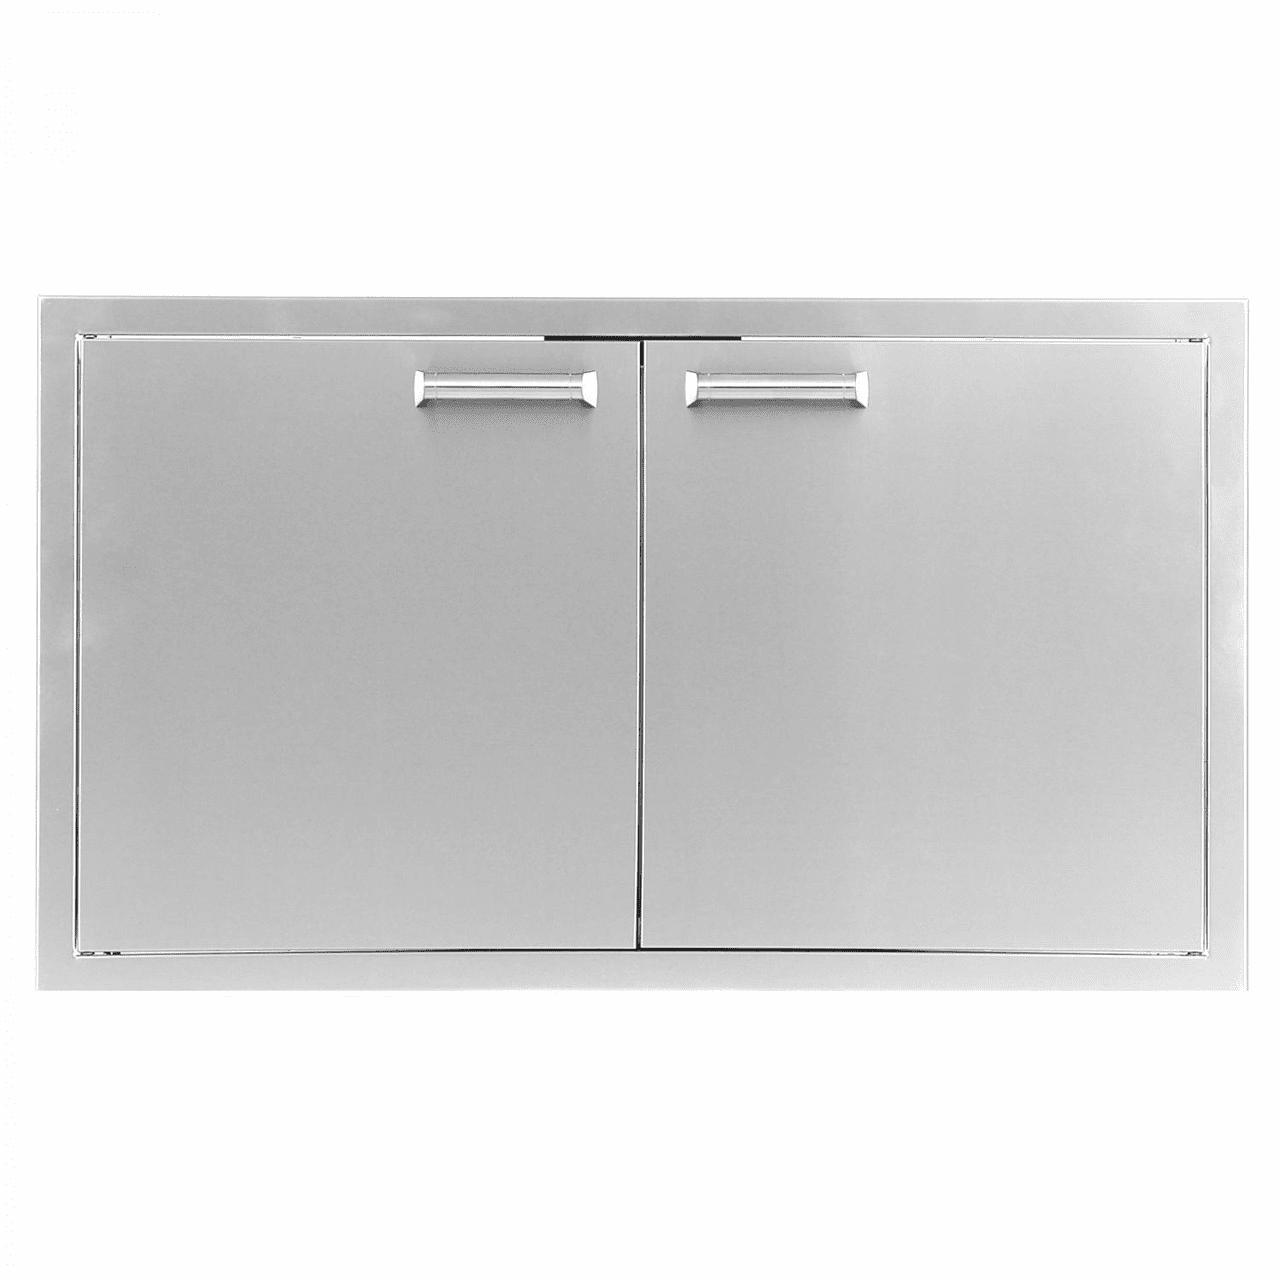 """PCM 301H Series 48"""" Double Doors Stainless steel"""